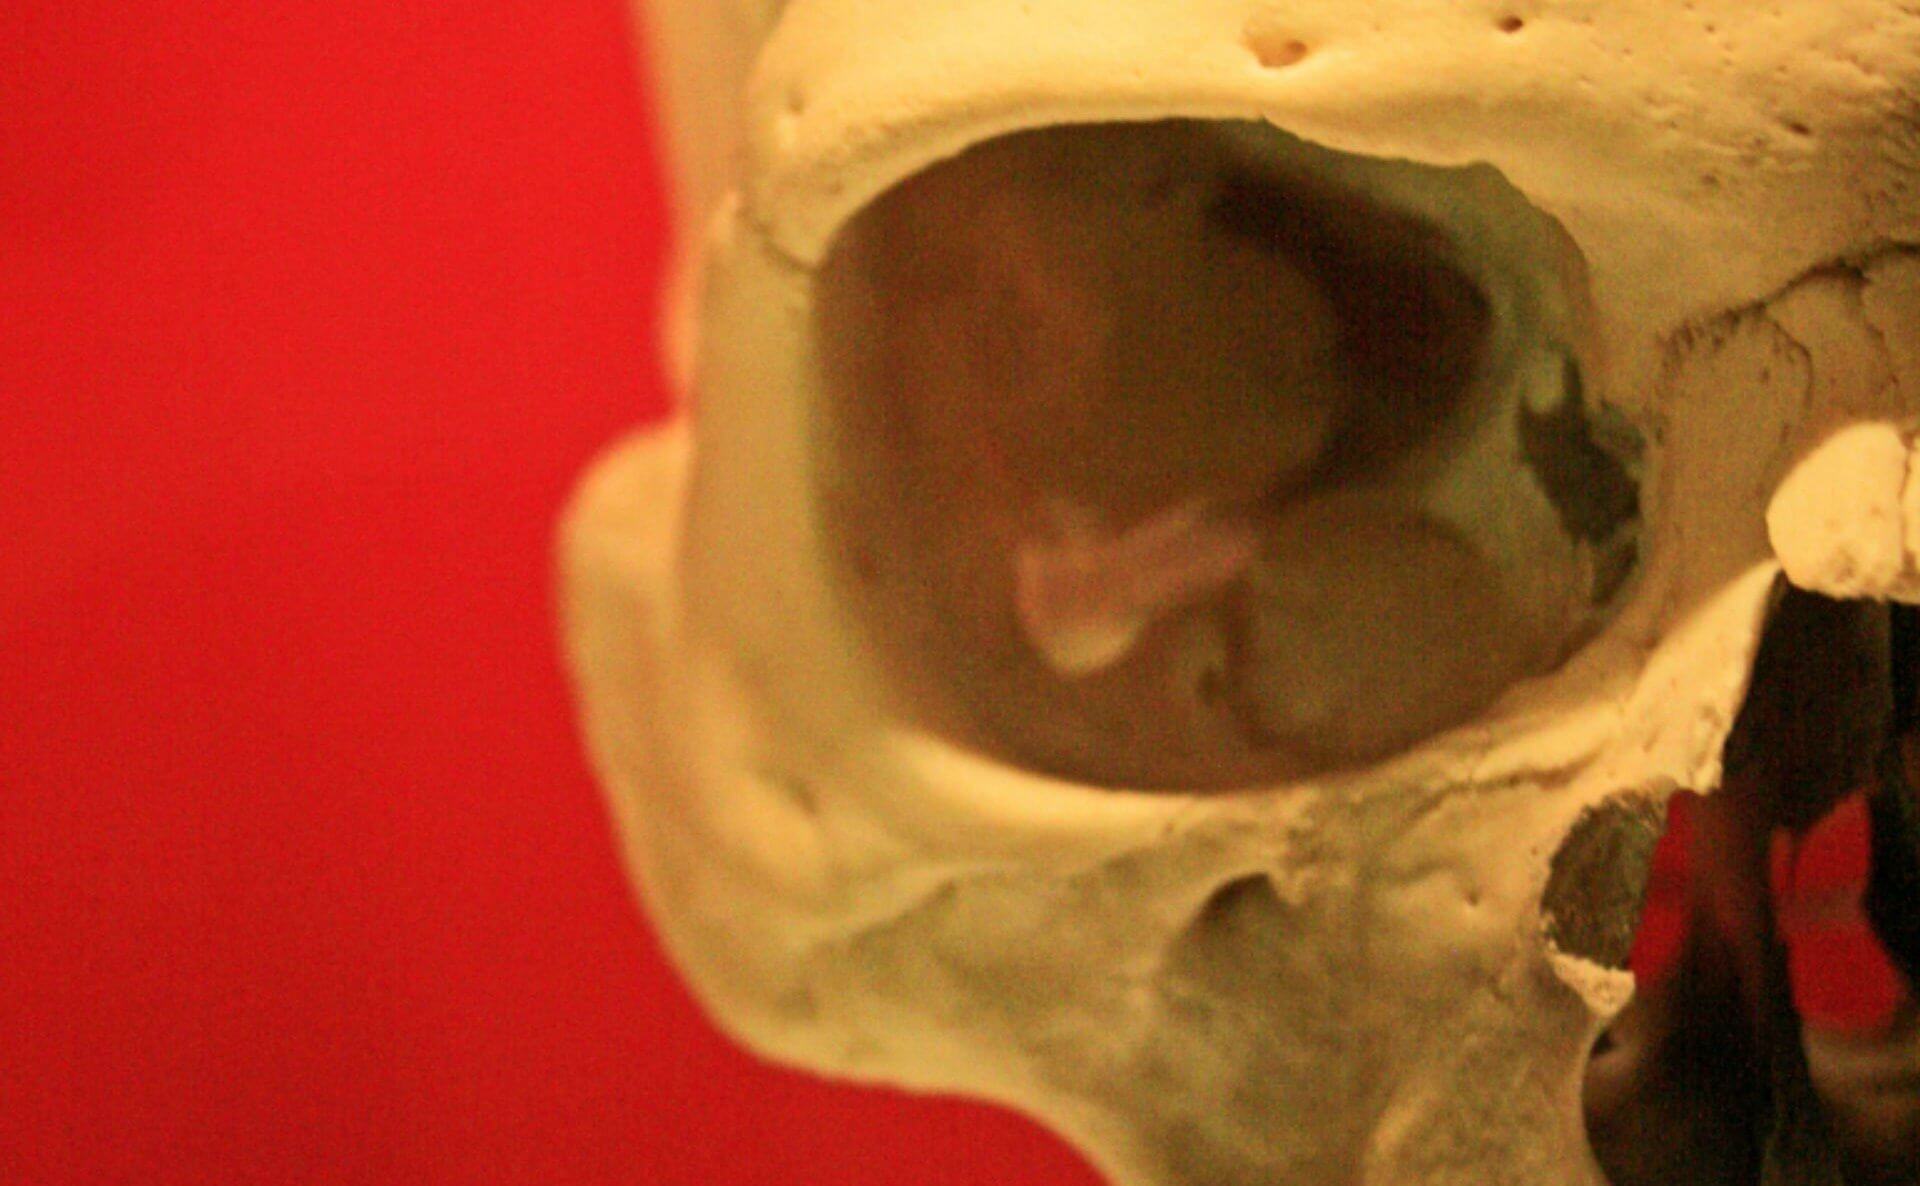 The Archaeology of Disease Documented in Skeletons